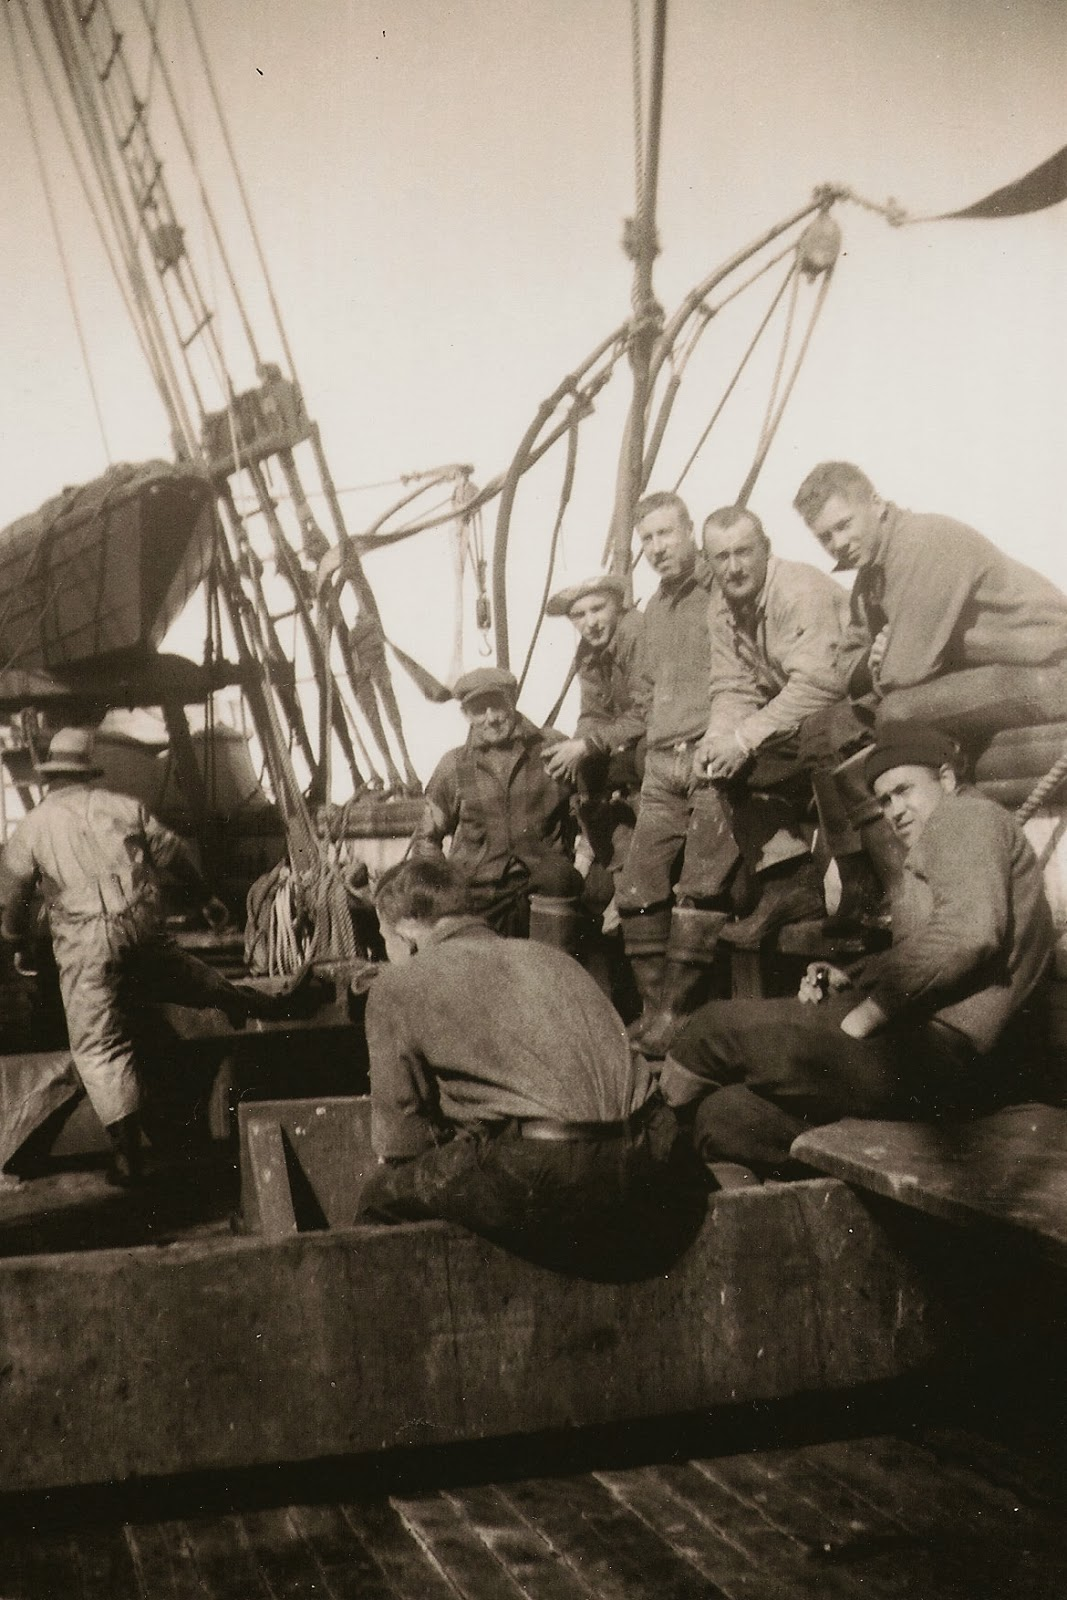 These 9 Donated Photos Aboard The Schooner SOPHIE CHRISTENSON Are Unidentified For Date And Names Of Fishermen Can You Help Us With Any Crew